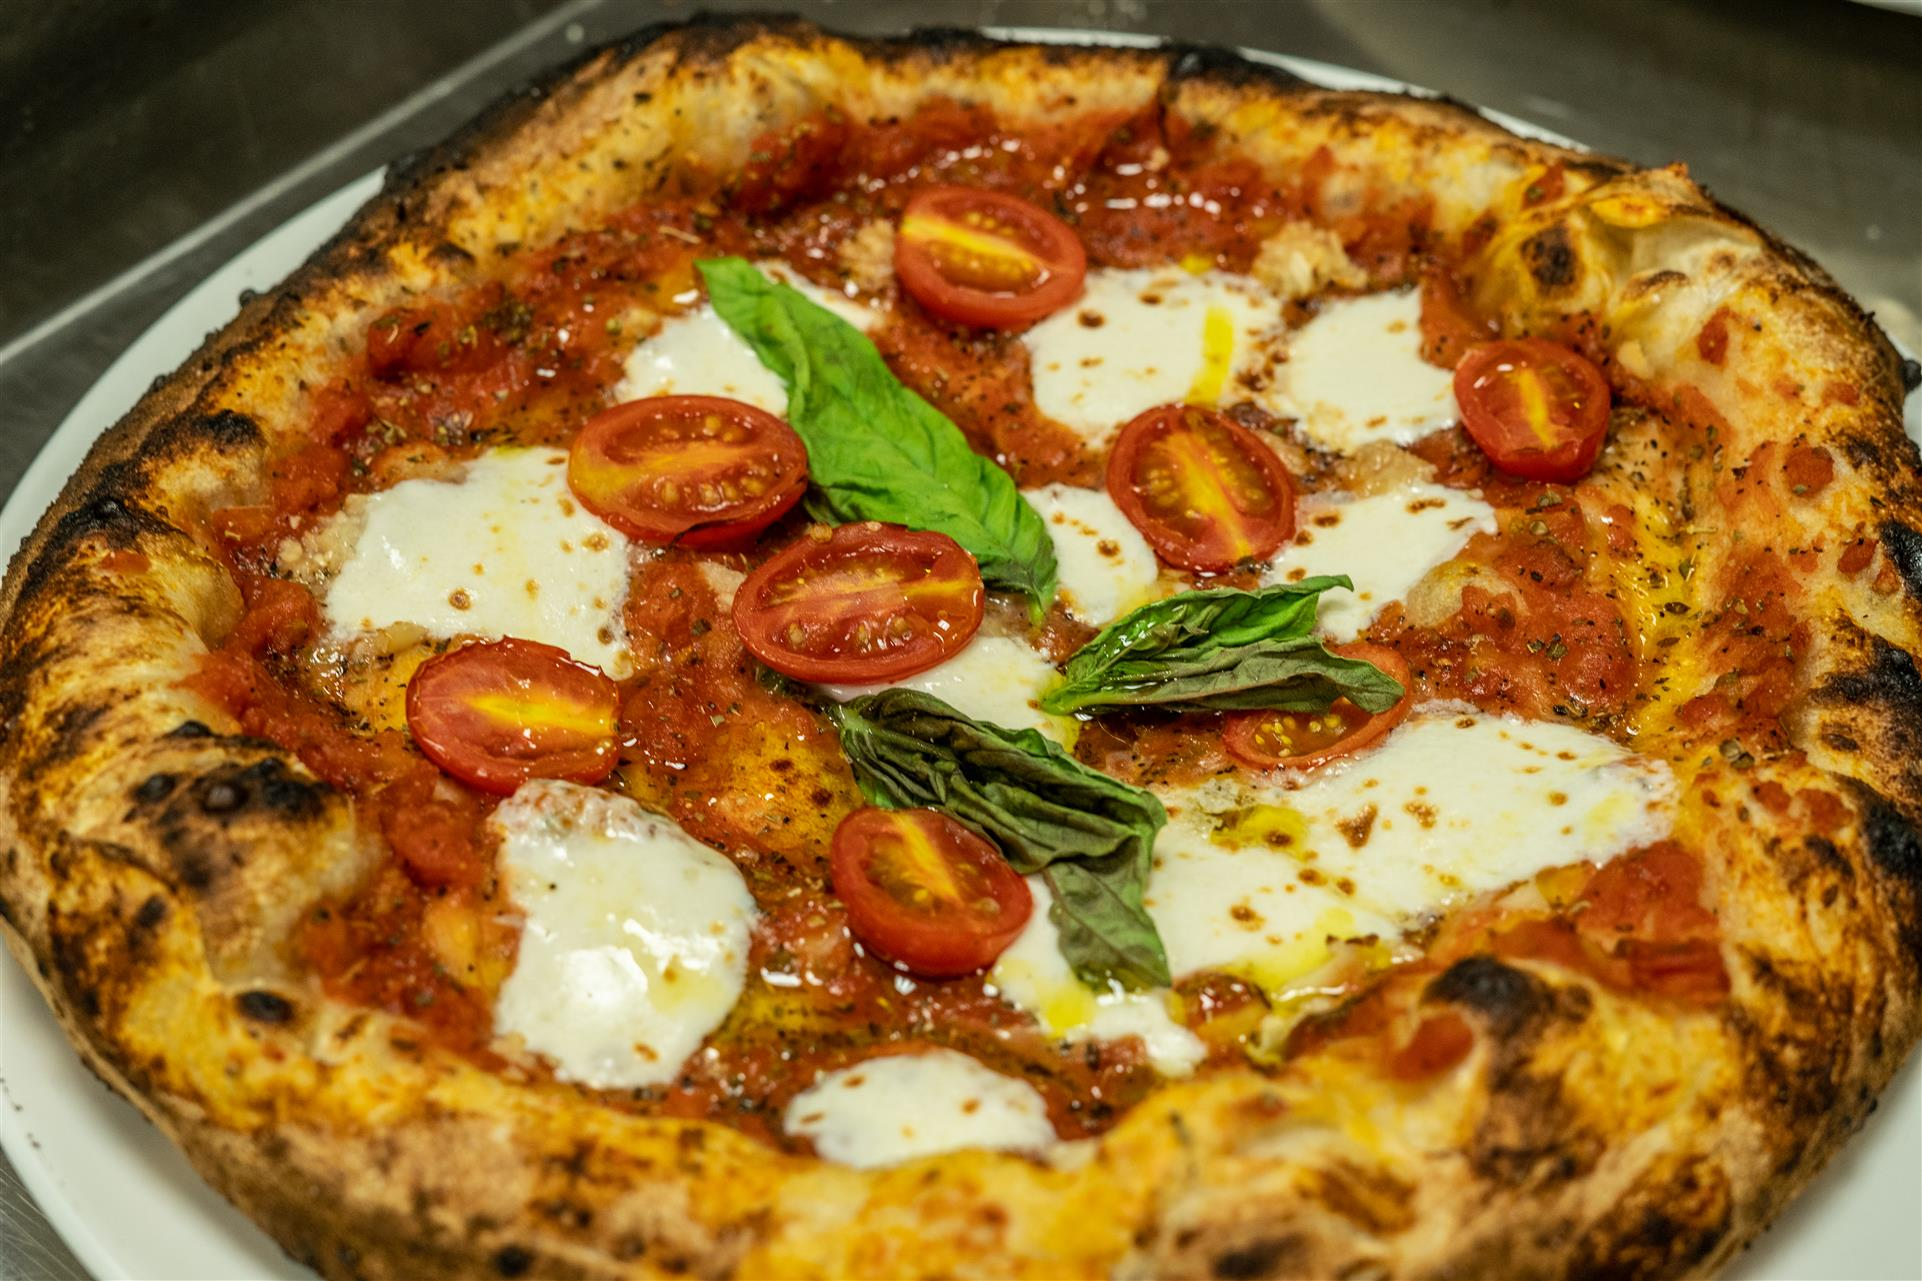 Mario Margarita Pizza. Crushed tomato sauce, fresh Mozzarella di Bufala, blistered cherry tomatoes, basil & olive oil